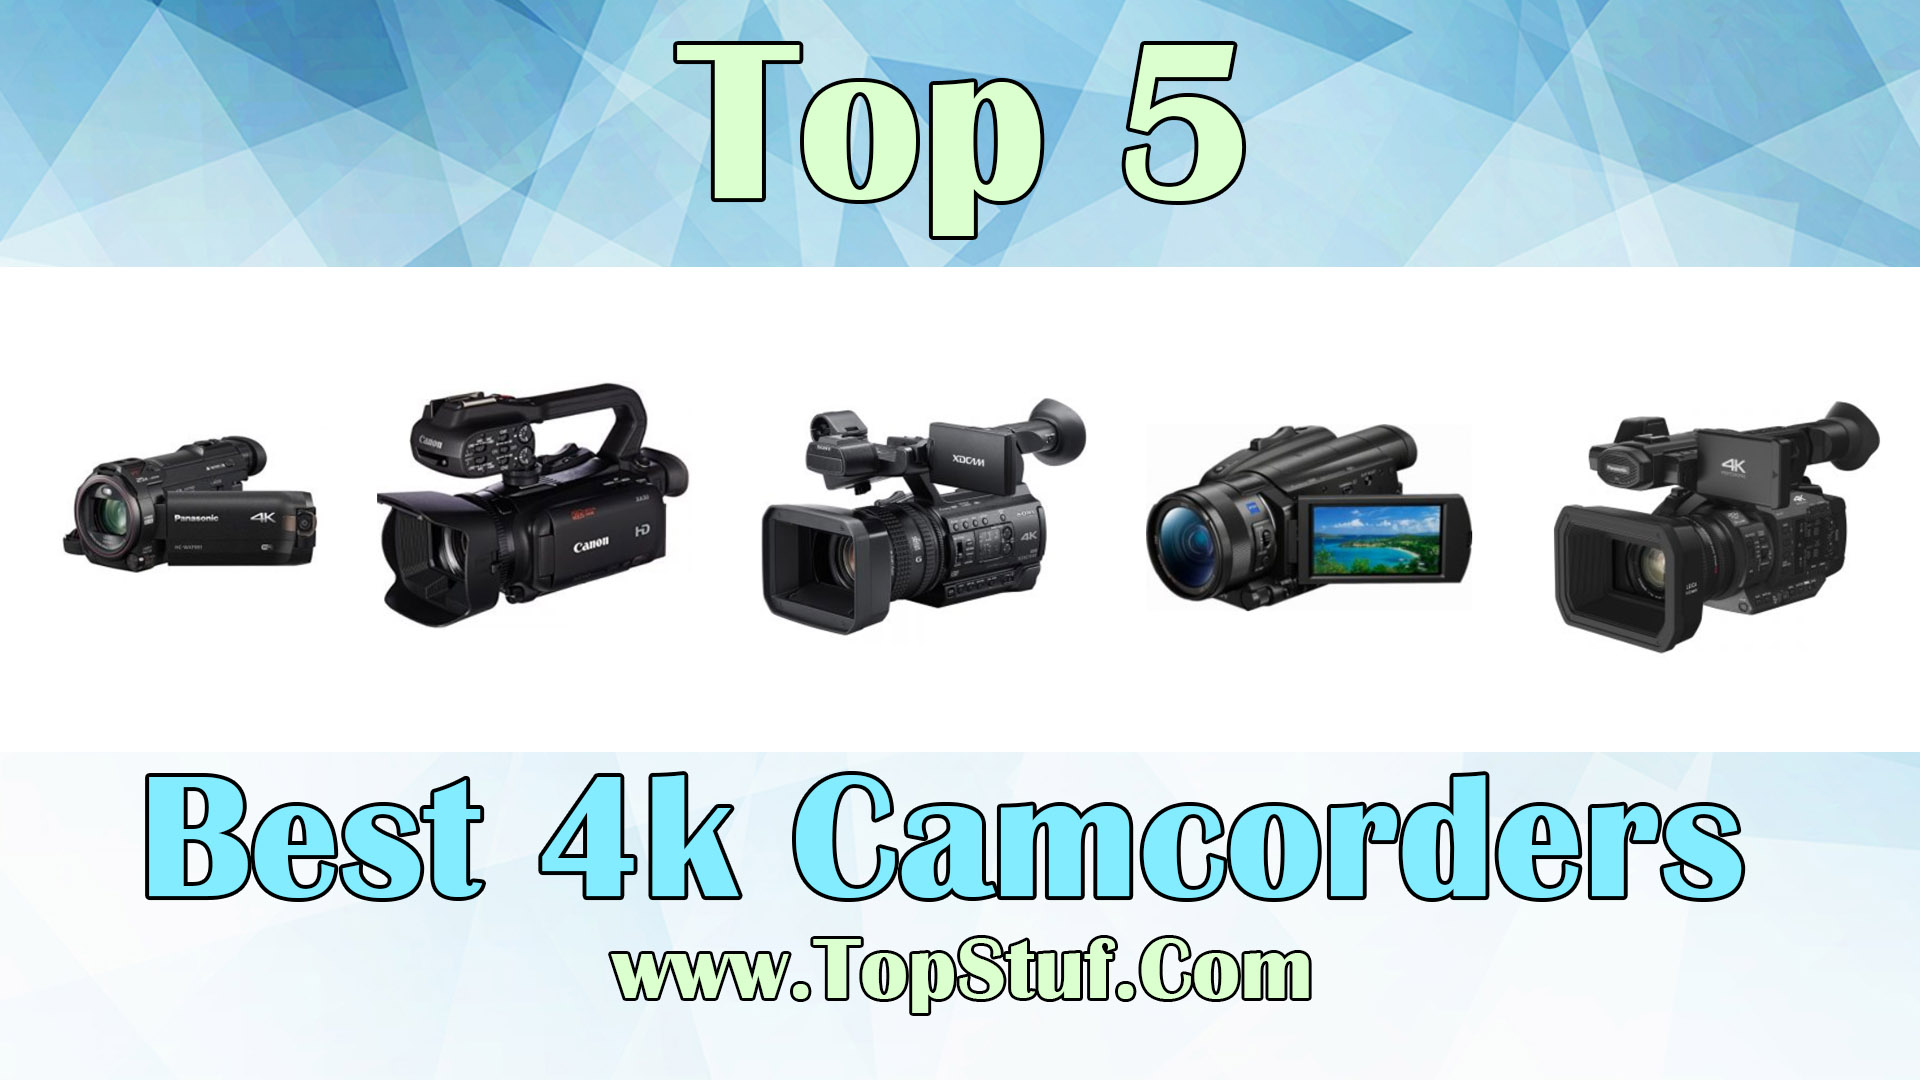 Top 5 best 4k Camcorders - Perfect Gift For Film Makers!